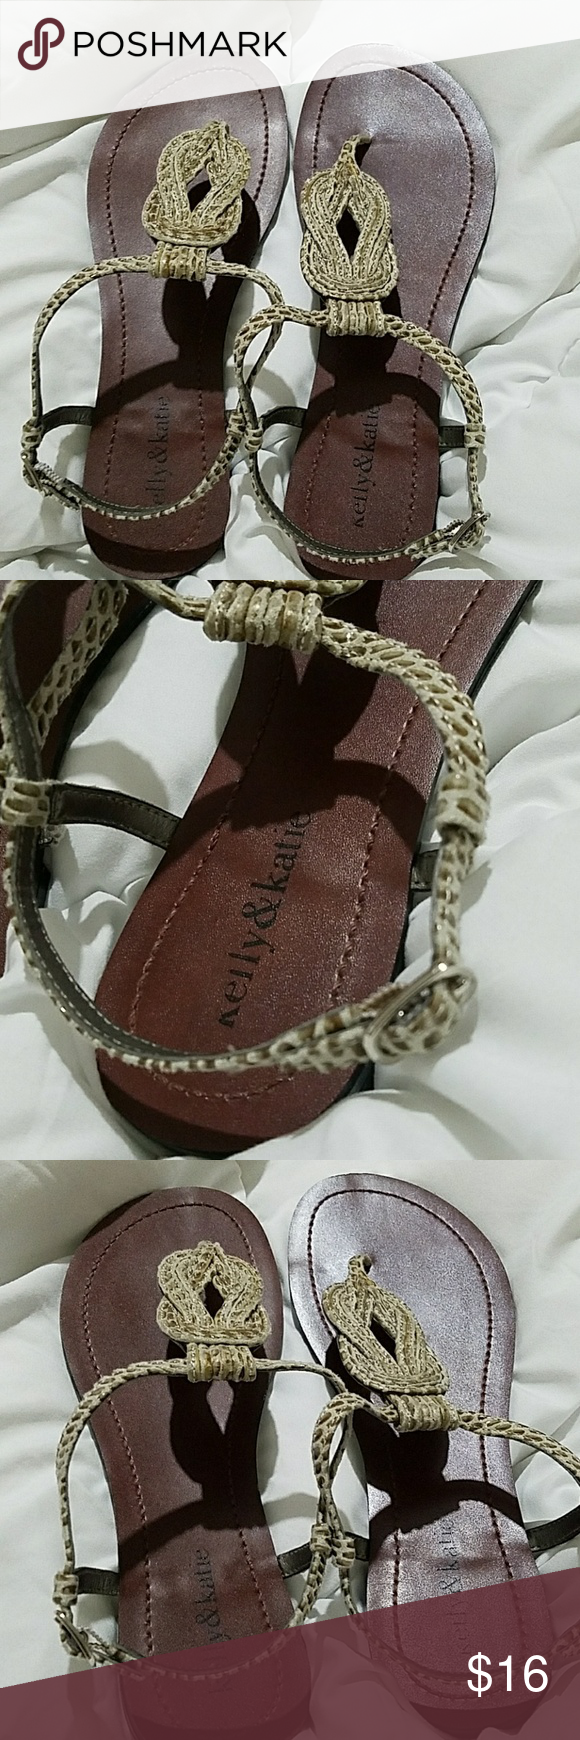 d34774a13e4e Kelly   Katie Poppy Flat Sandals size 7   Used only twice   Color Pewter. Great  sandals